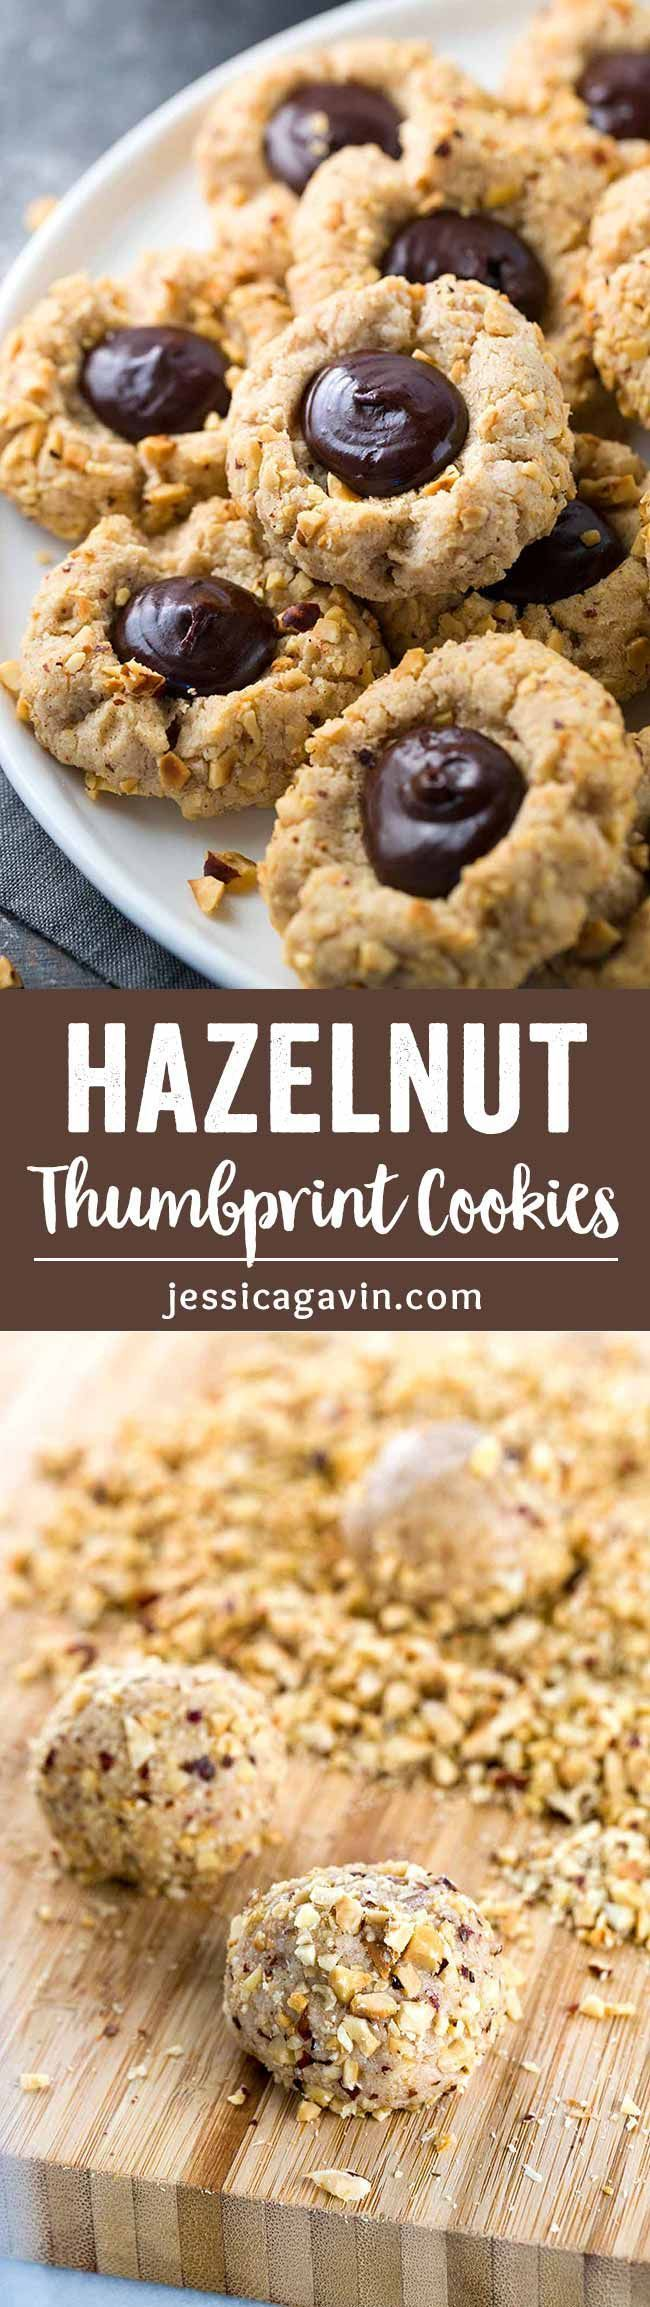 Gluten Free Chocolate Hazelnut Thumbprint Cookies - These decadent sweet treats are so simple to make! Rolled in crunchy hazelnuts and filled with silky chocolate ganache. via /foodiegavin/